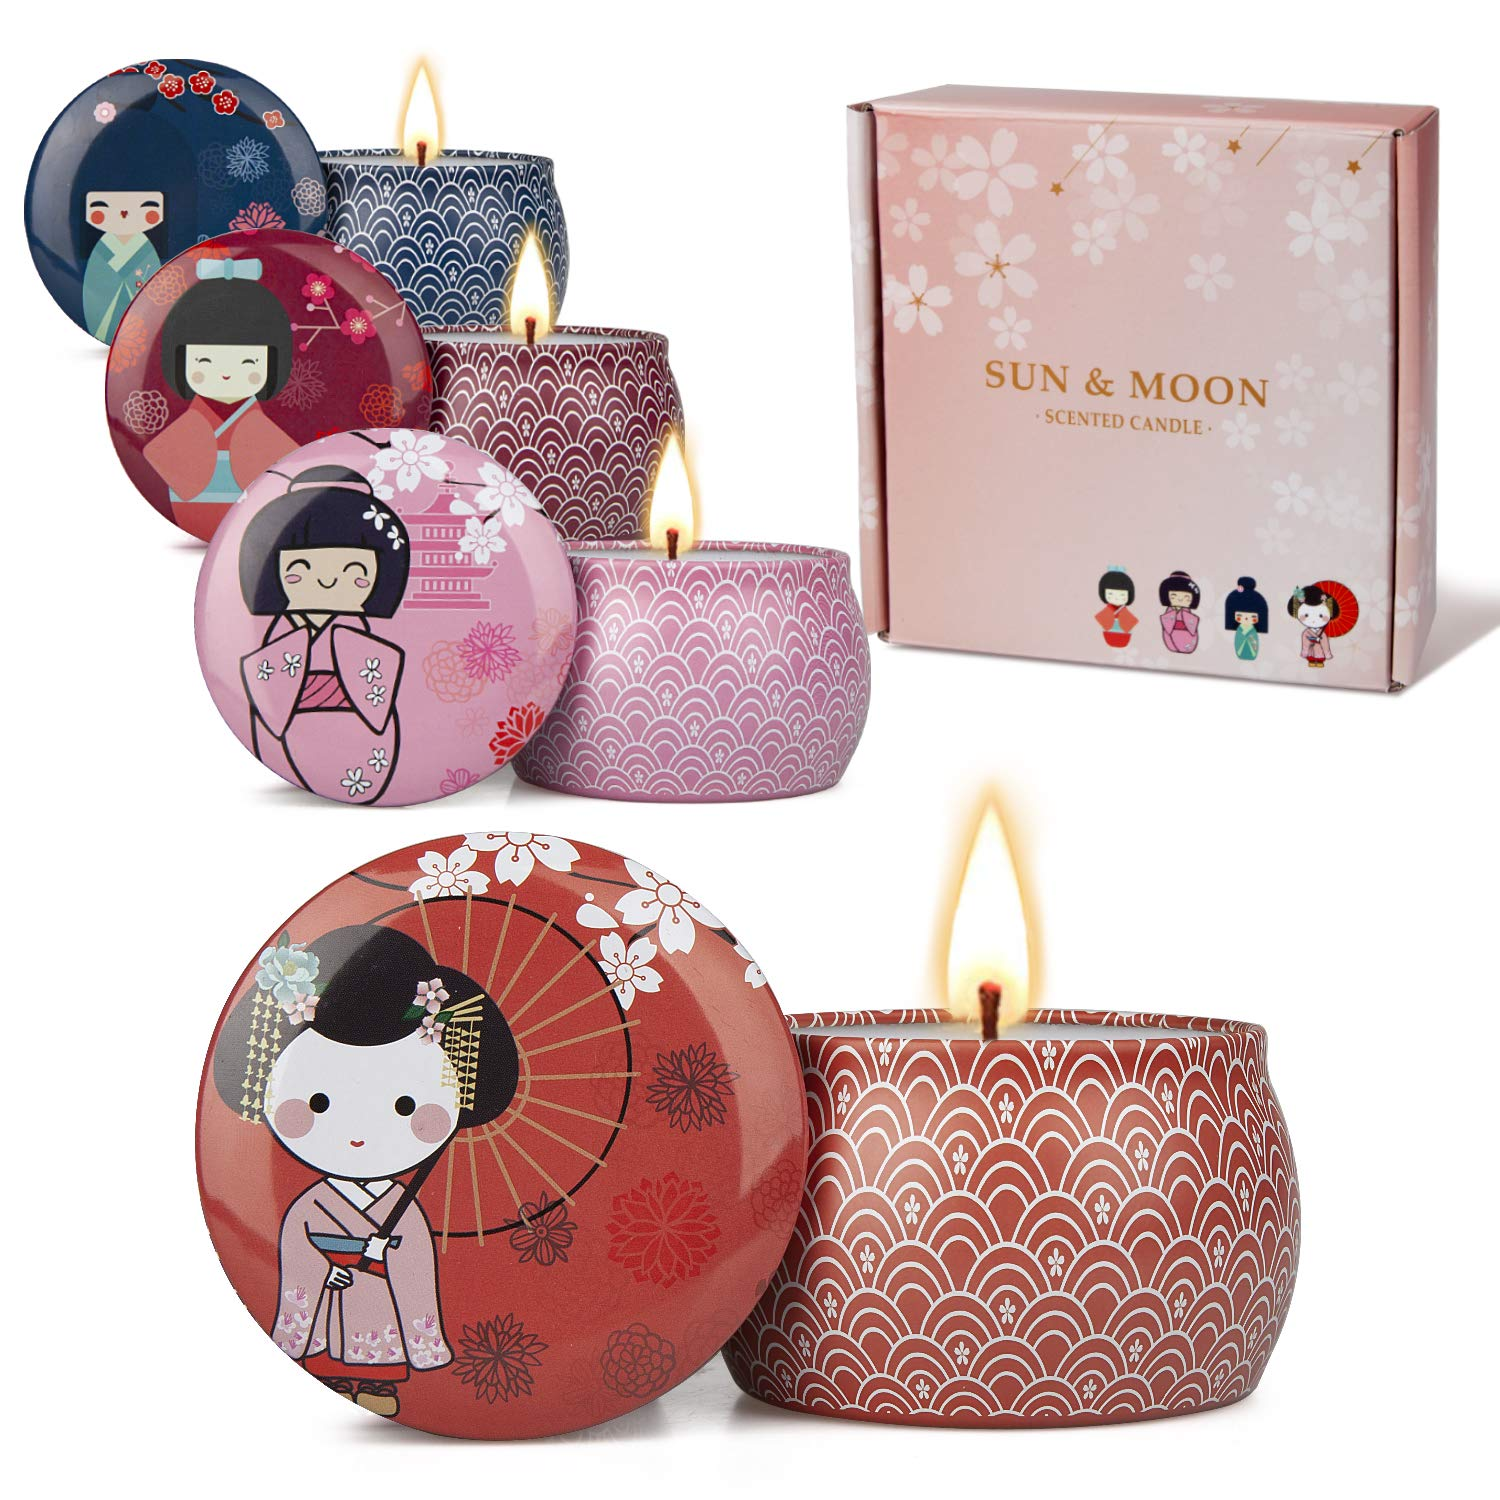 Y YUEGANG Memoirs of a Geisha Scented Candles Aromatherapy Japanese Gifts for Women Fragrance Candle Set Travel Tin Natural Soy Wax Essential Oils Stress Relief Relaxation Birthday